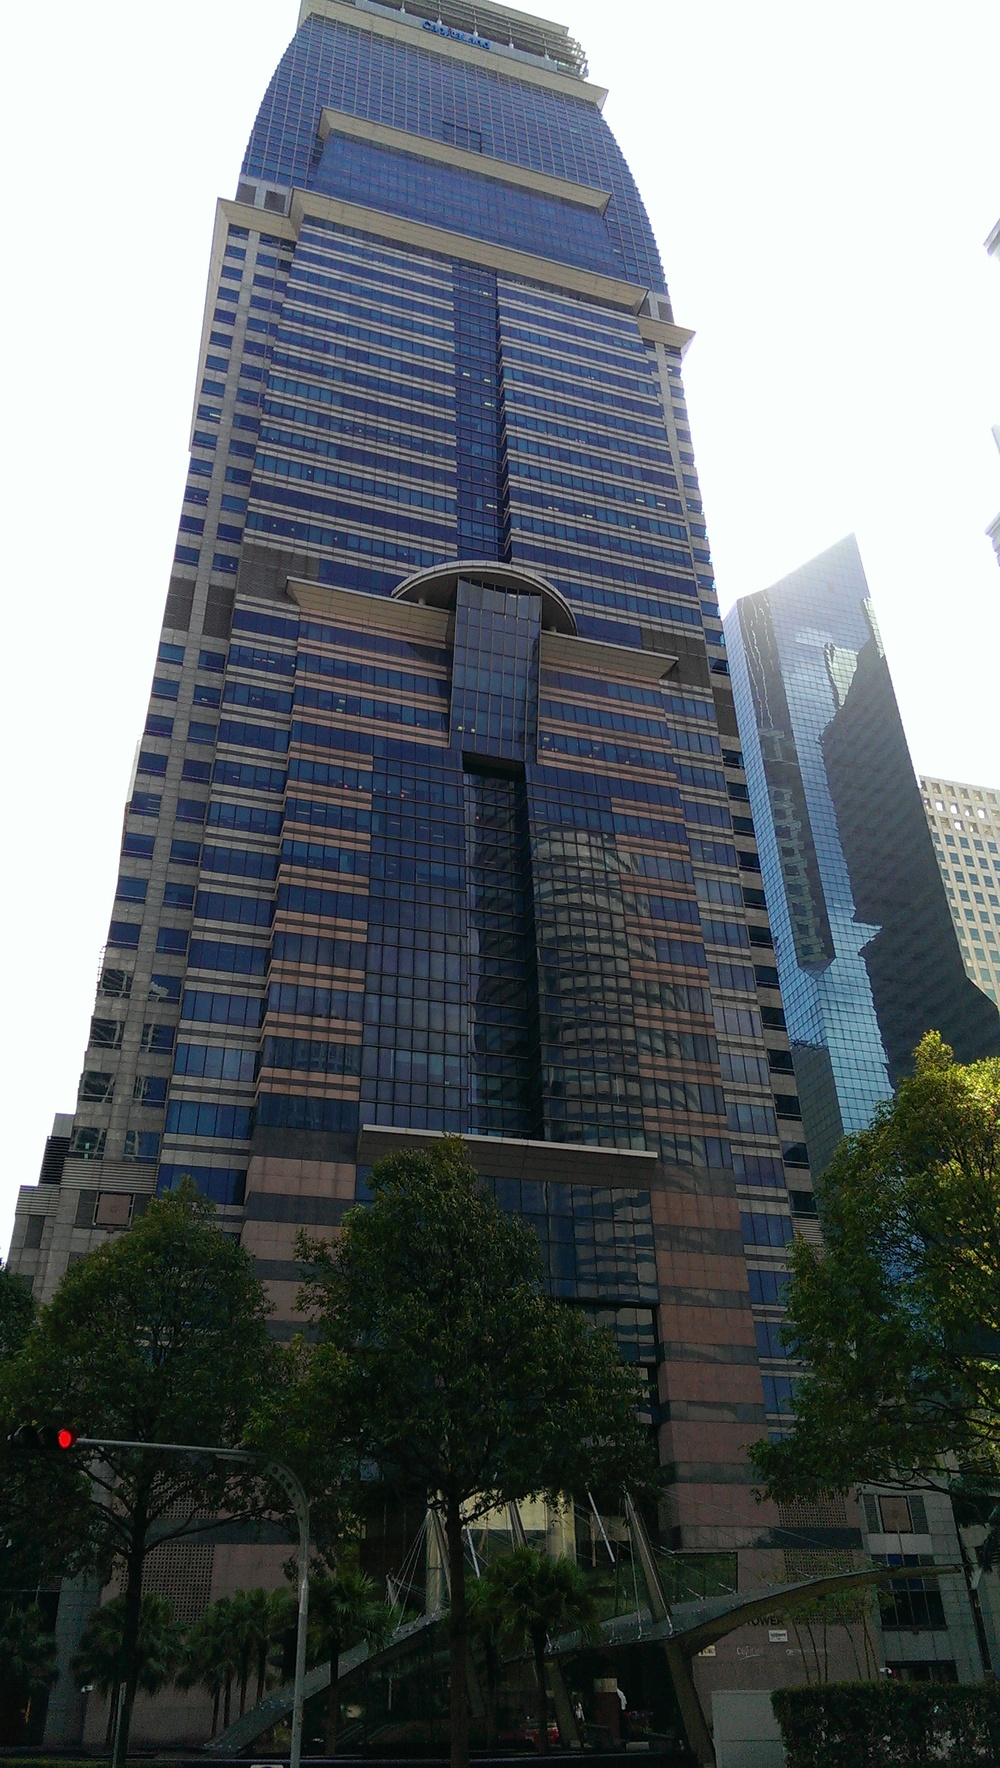 IMAG1361 - Capital Tower - SSgA Offices on 33rd Floor.jpg